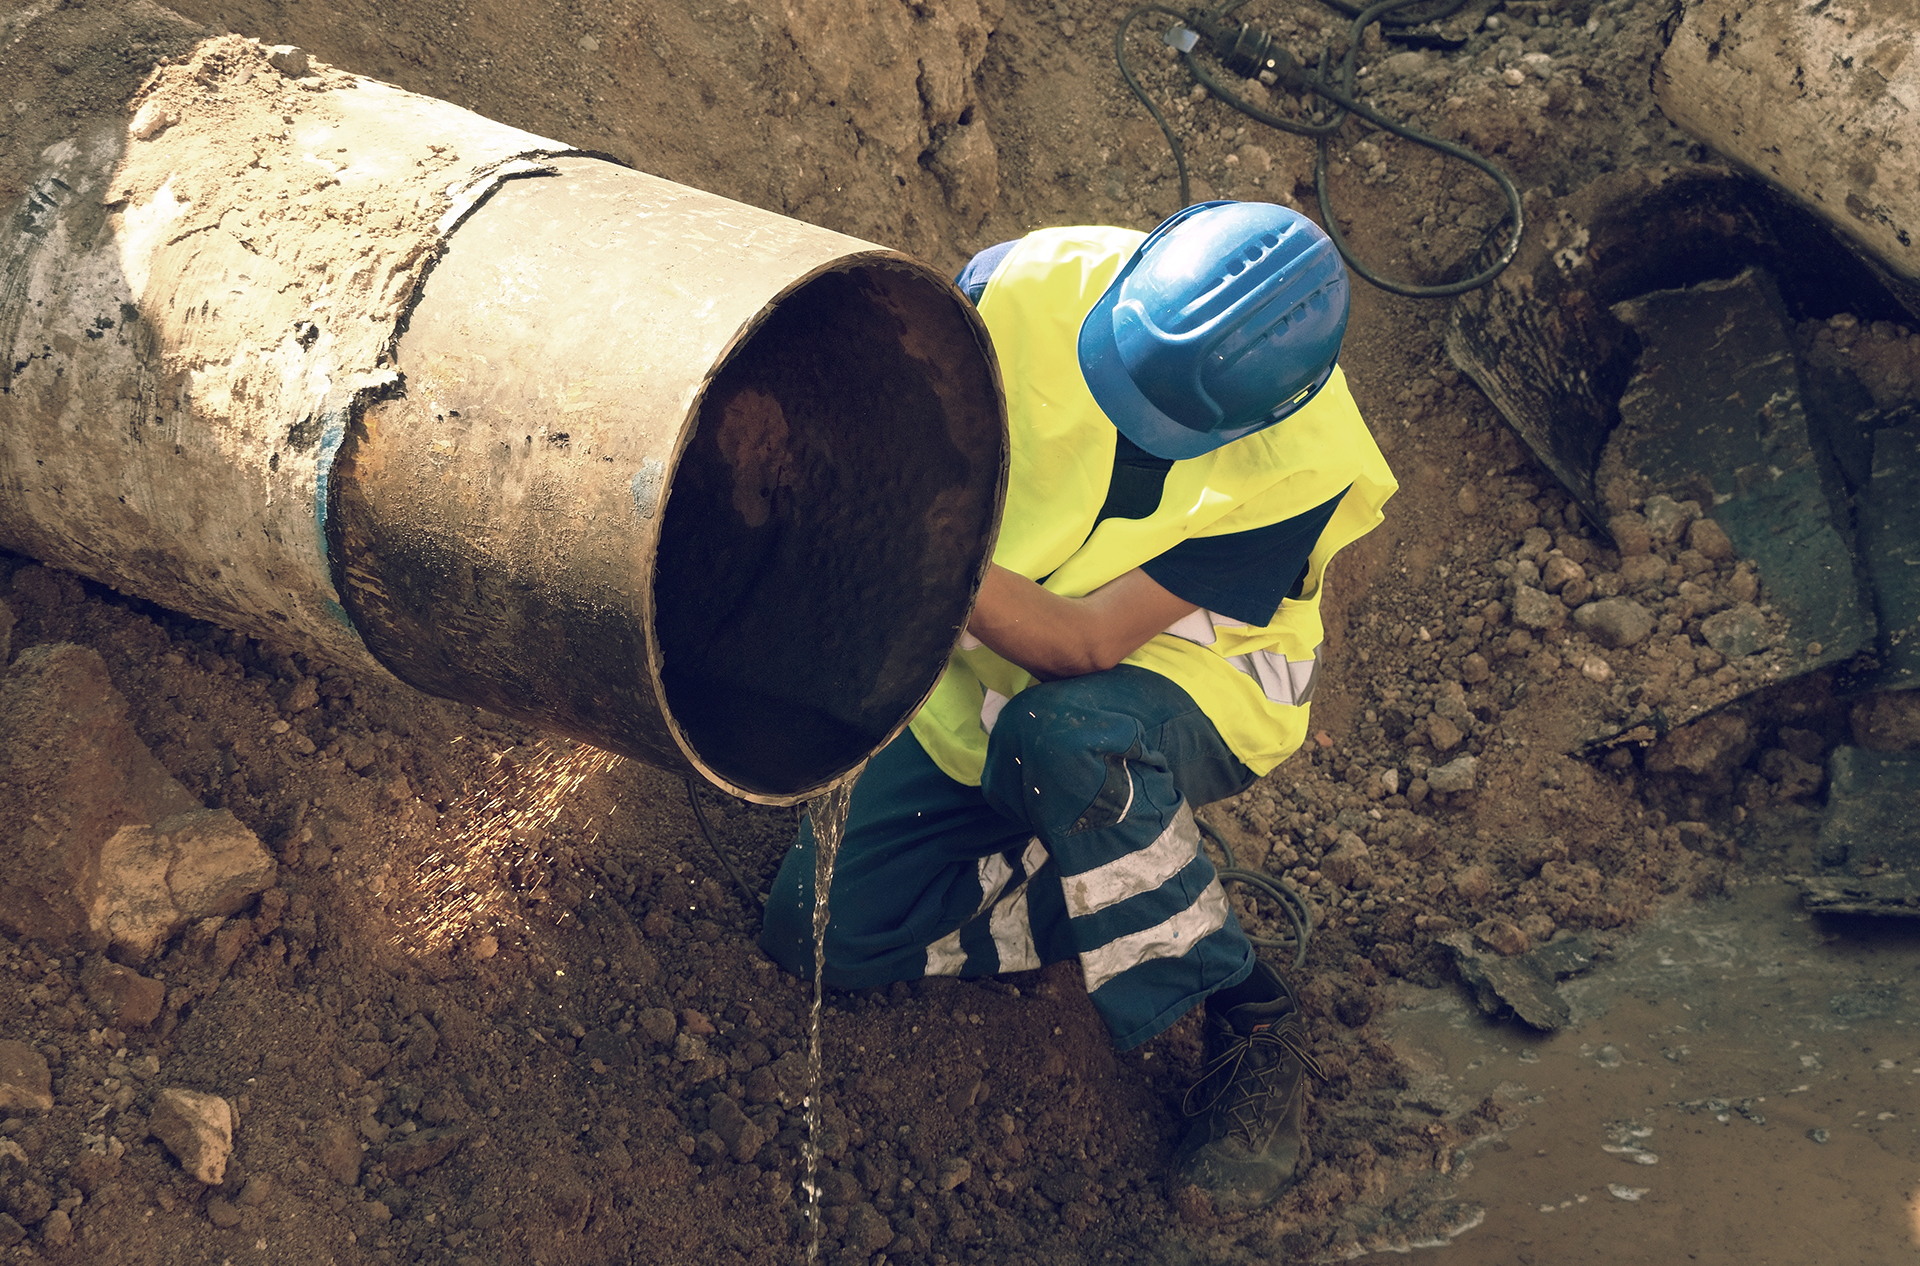 Worker staff is cutting big metal tube with hand grinder. Burning parks are flying down to wet clay. Staff use safety clothes protective boots. Deep excavation pit.